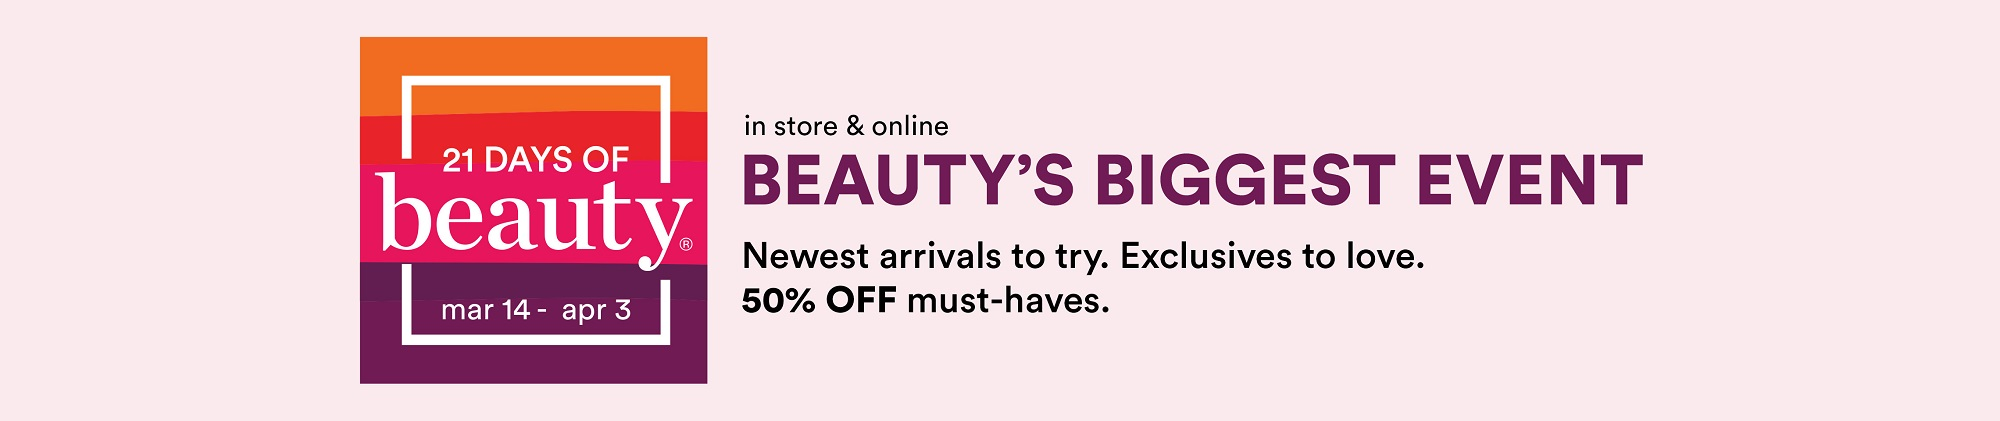 ULTA 21 Days of Beauty Ultimate Shopping Guide | March 2021